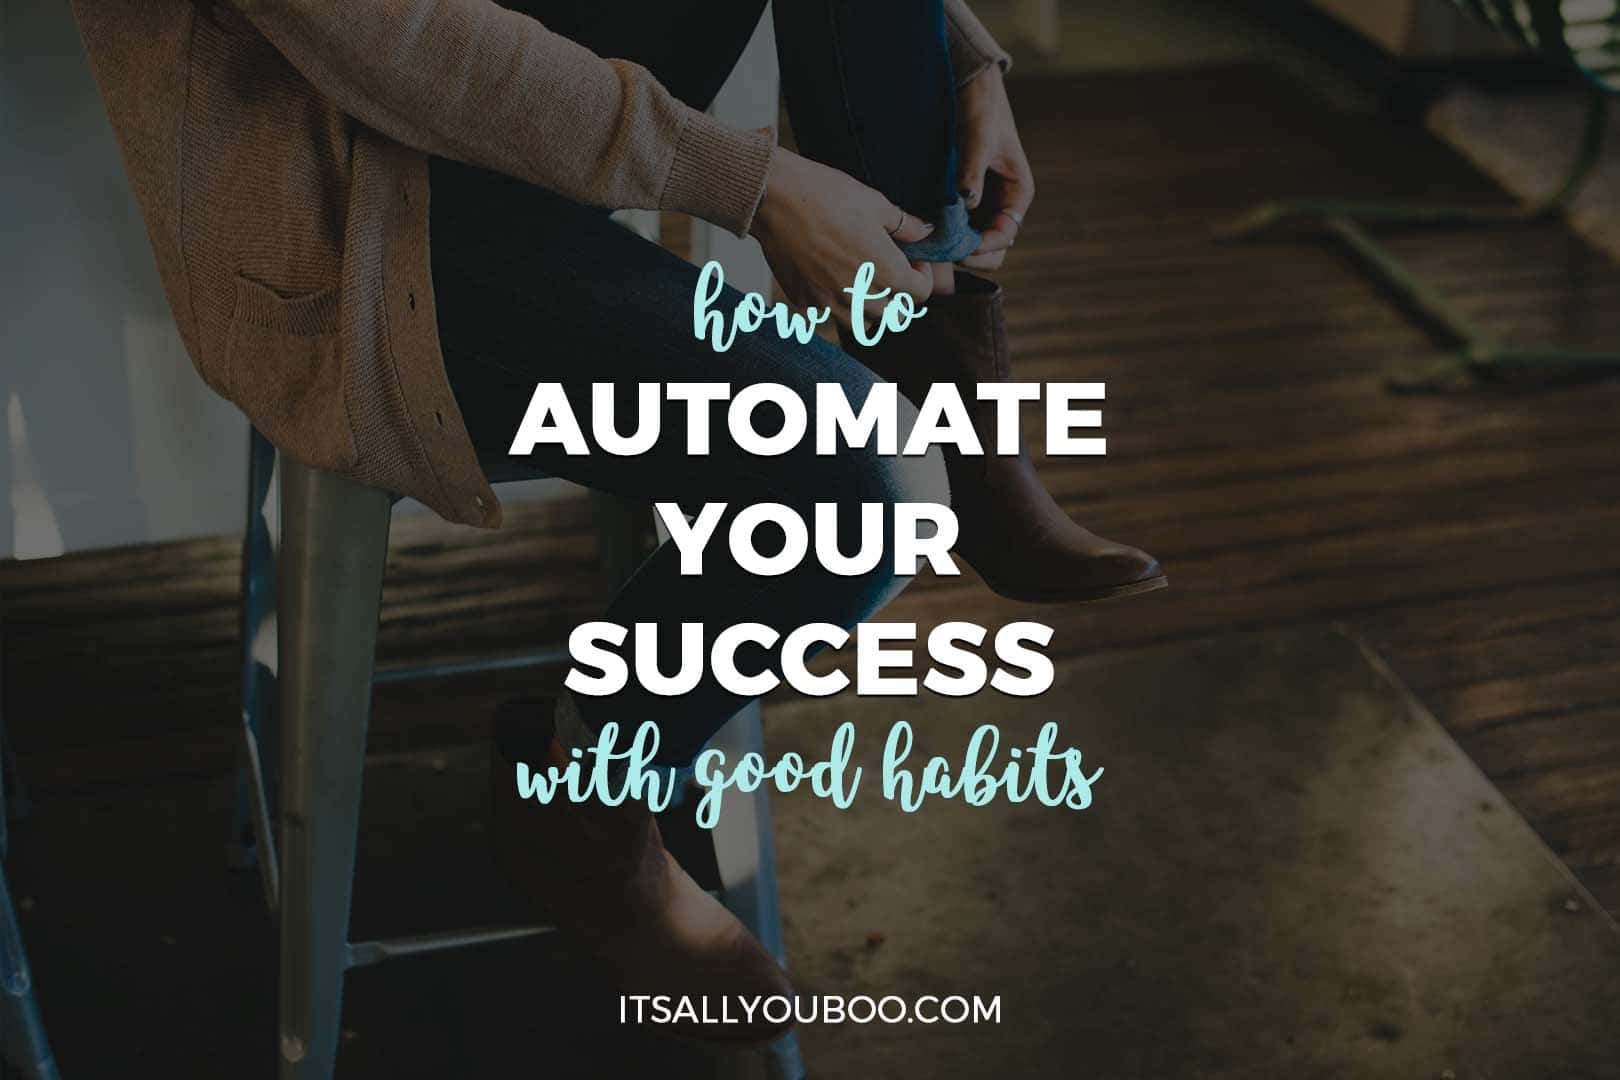 How to Automate Your Success with Good Habits